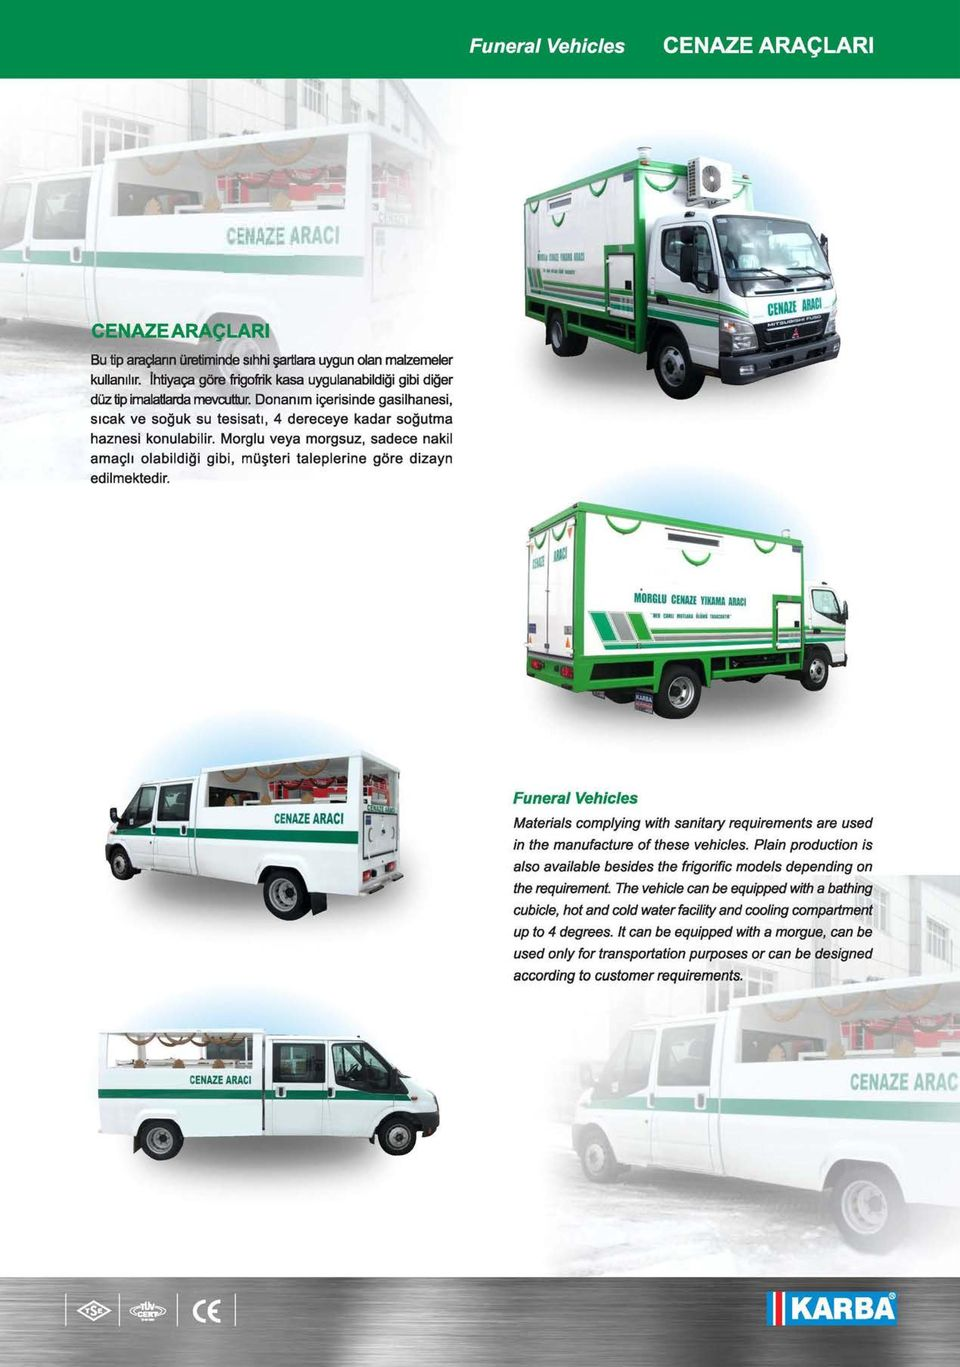 teri taleplerine gore dizayn edilmektedir. CENAZE ARACI Funeral Vehicles Materials complying with sanitary requirements are used in the manufacture of these vehicles.